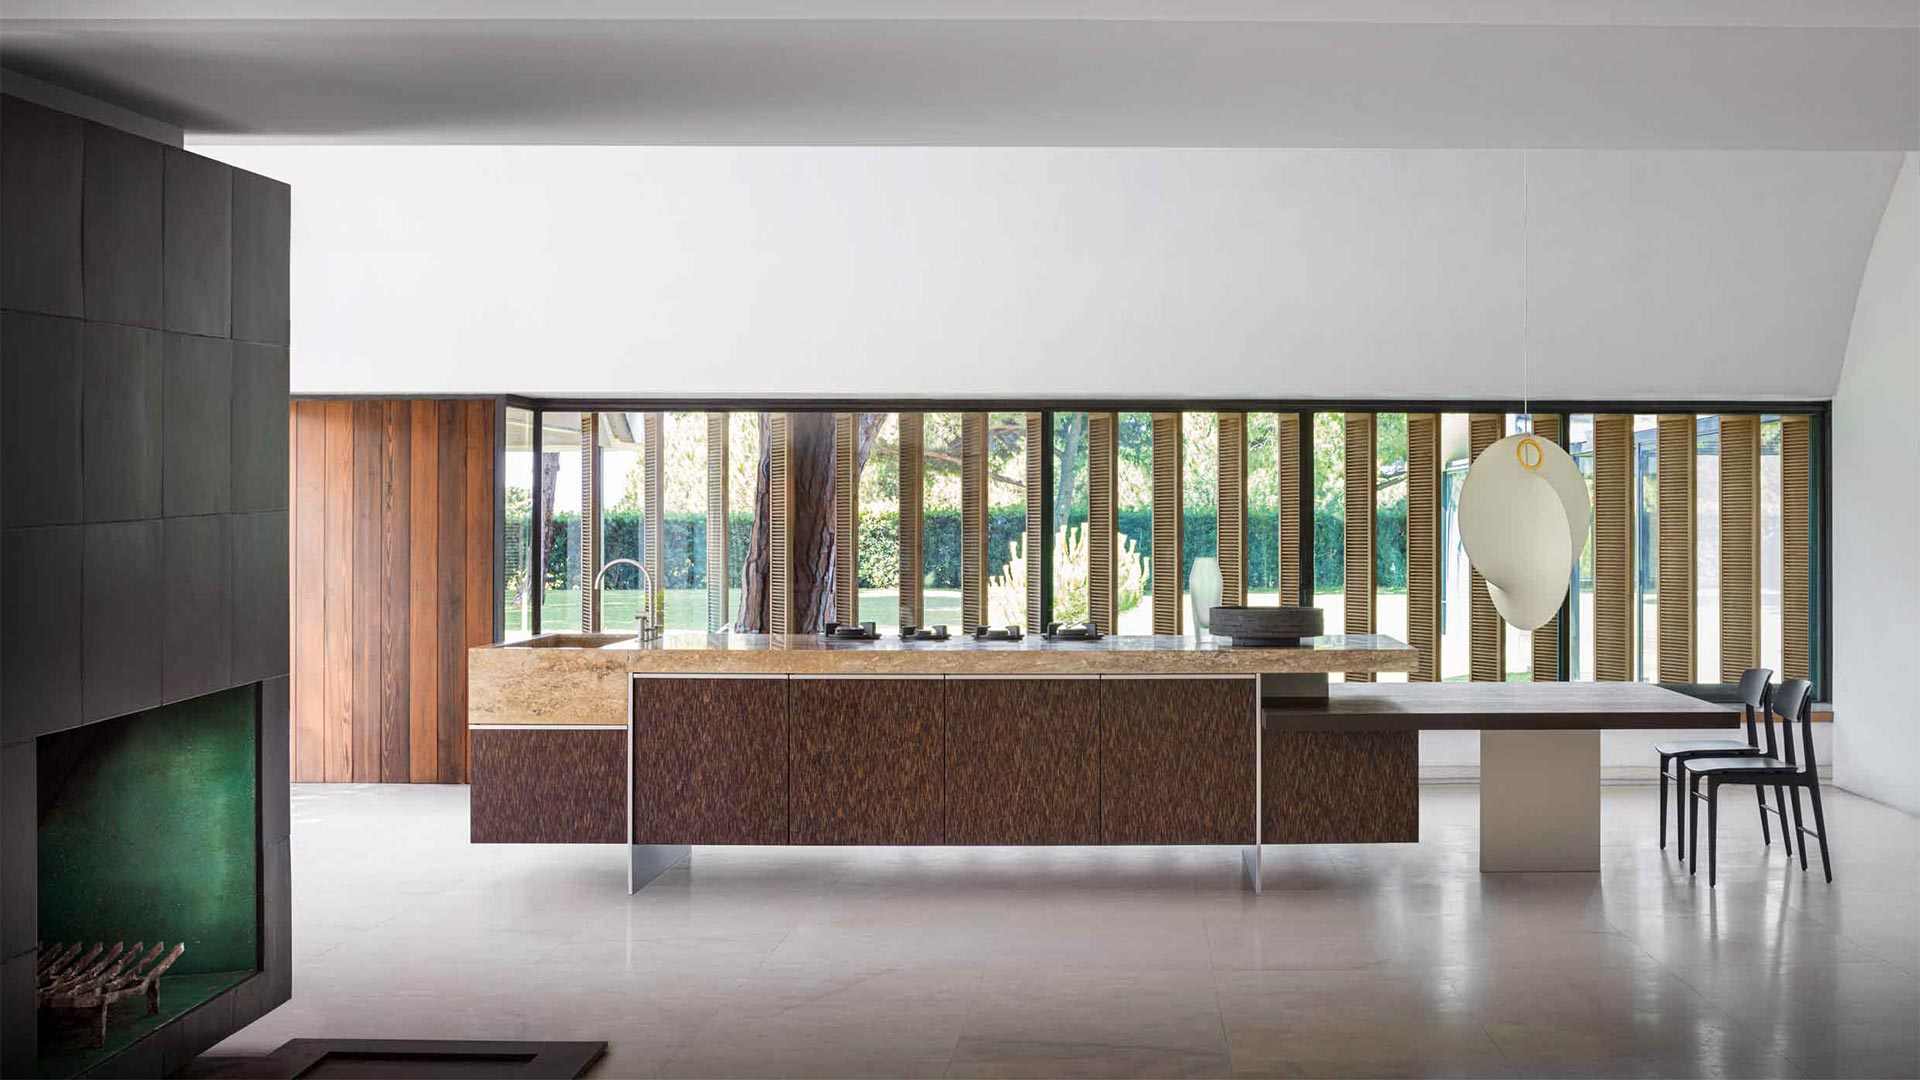 Dealers - Arredo Staff Agency - Italian Design Furniture - Molteni & C, Dada, Veneta Cucine